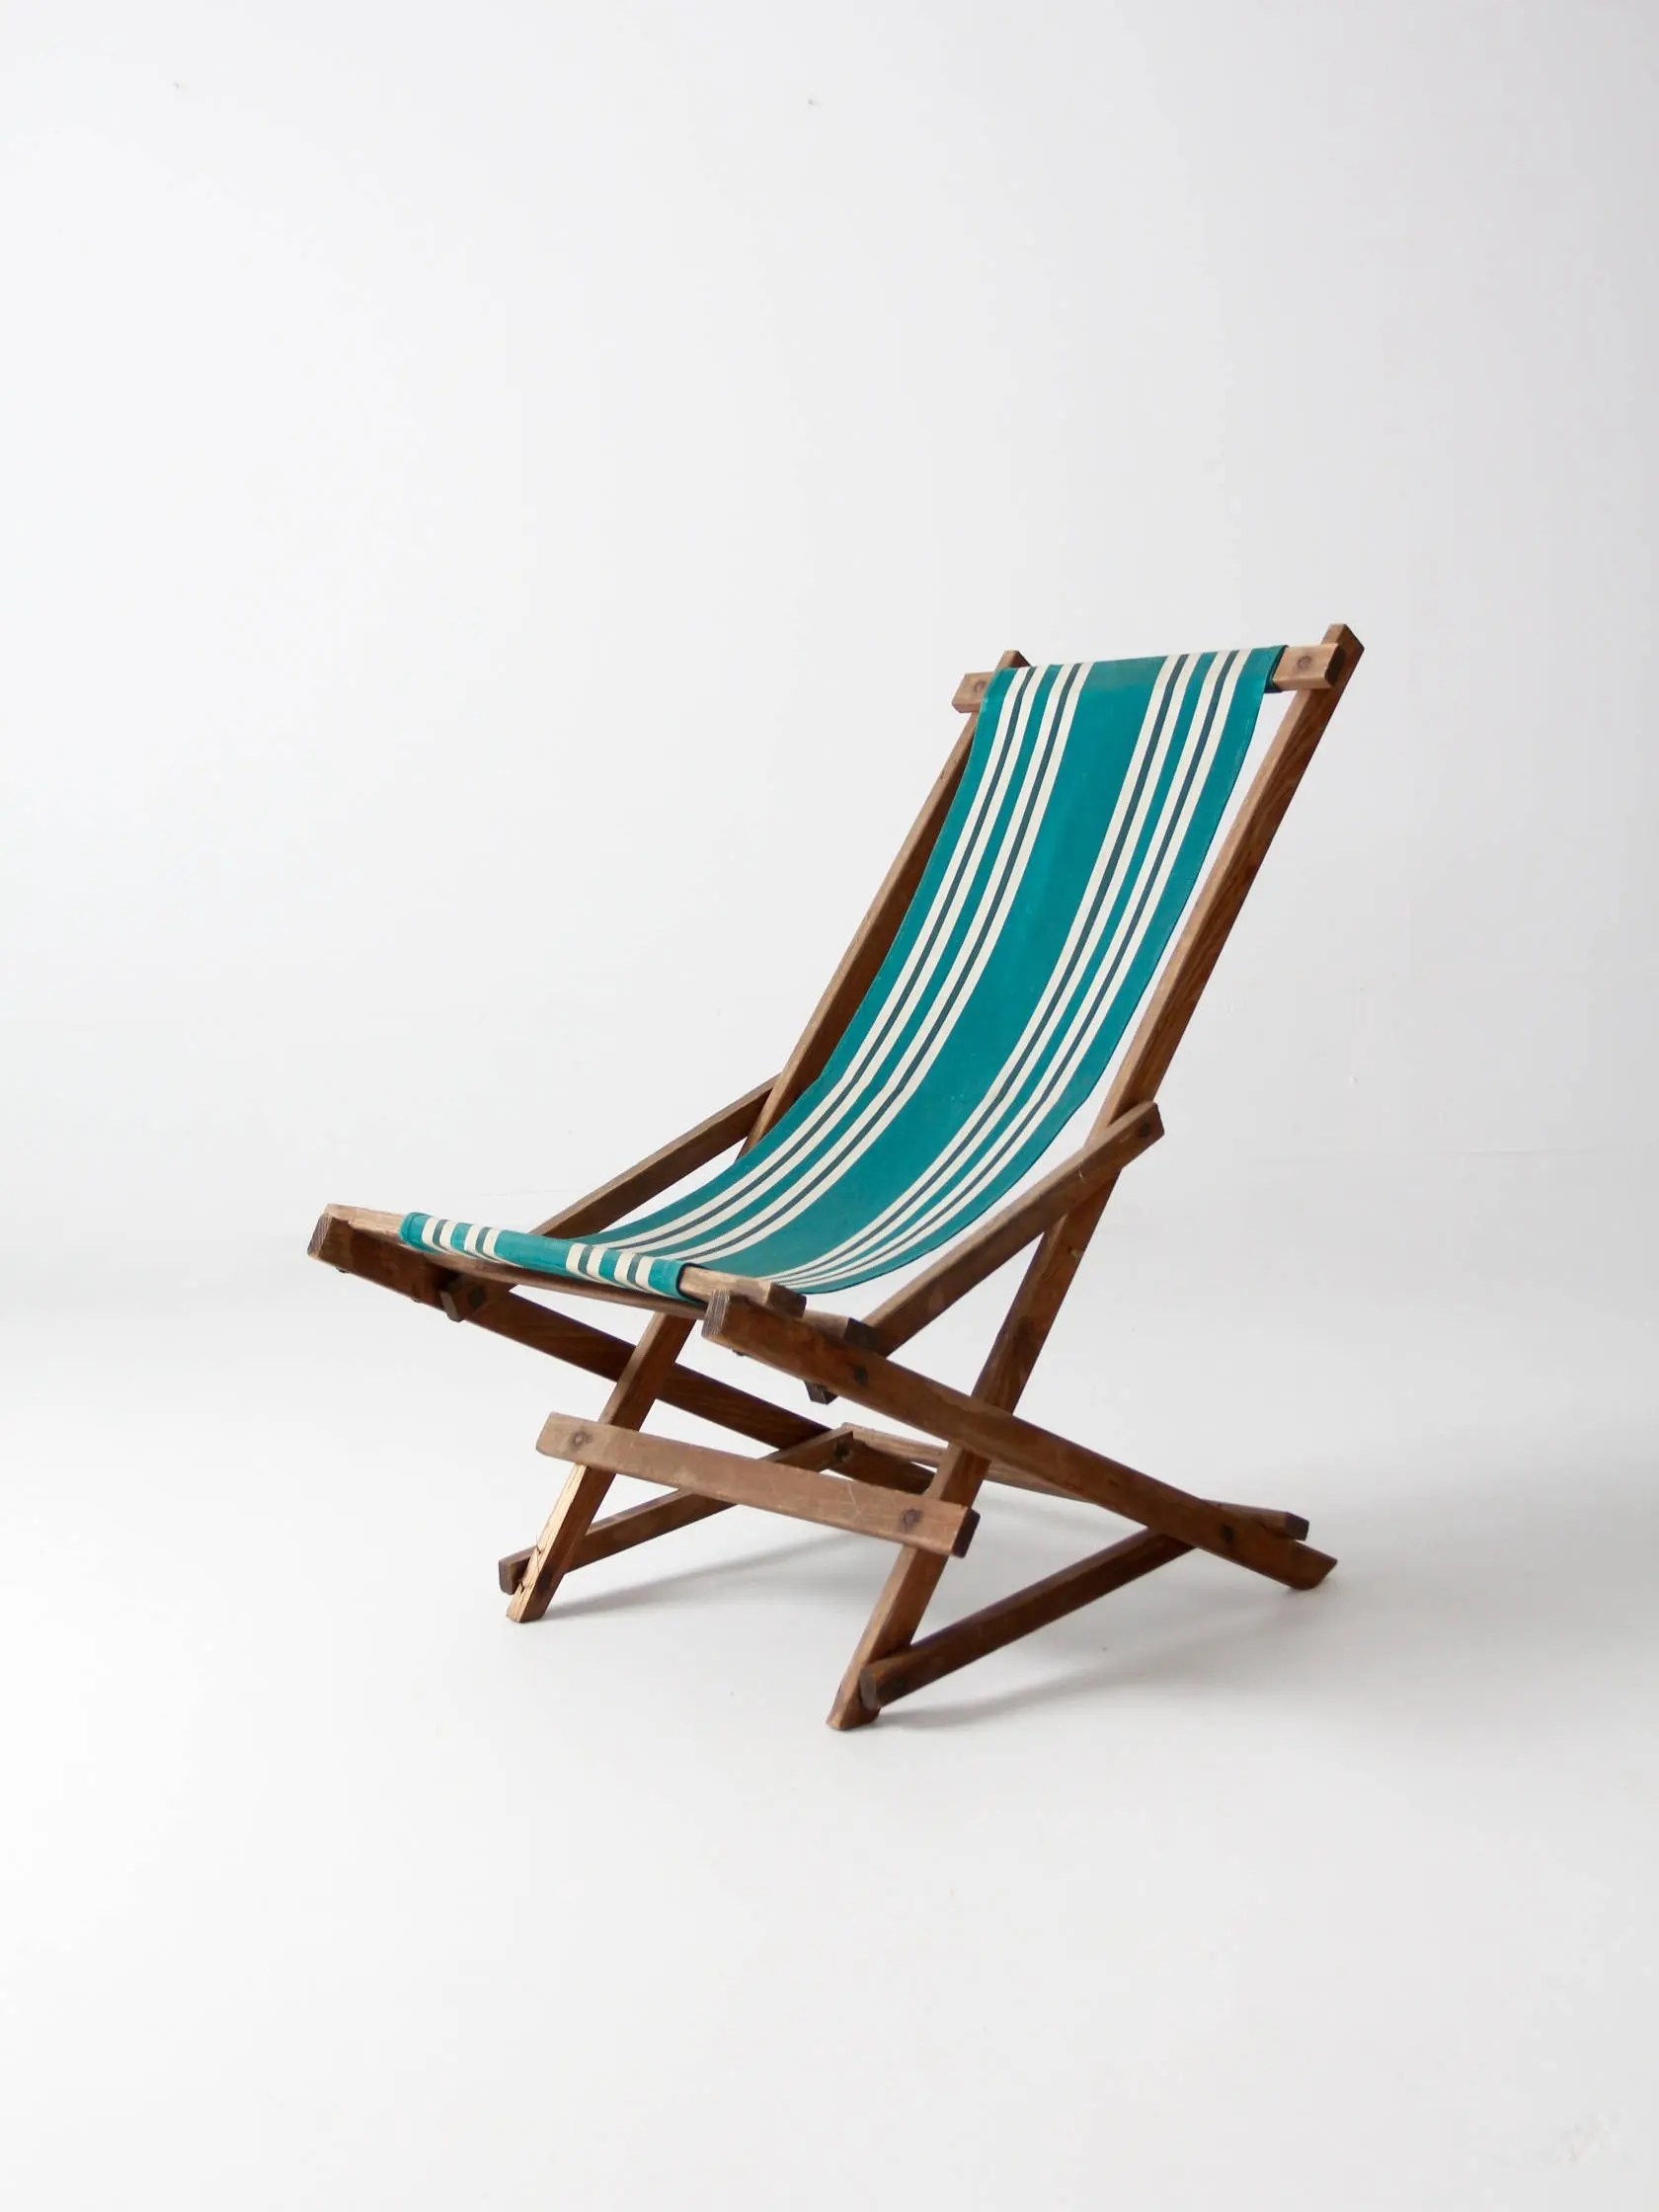 Folding Wood Beach Chair Vintage Striped Deck Chair Rocking Deck Chair Folding Beach Chair